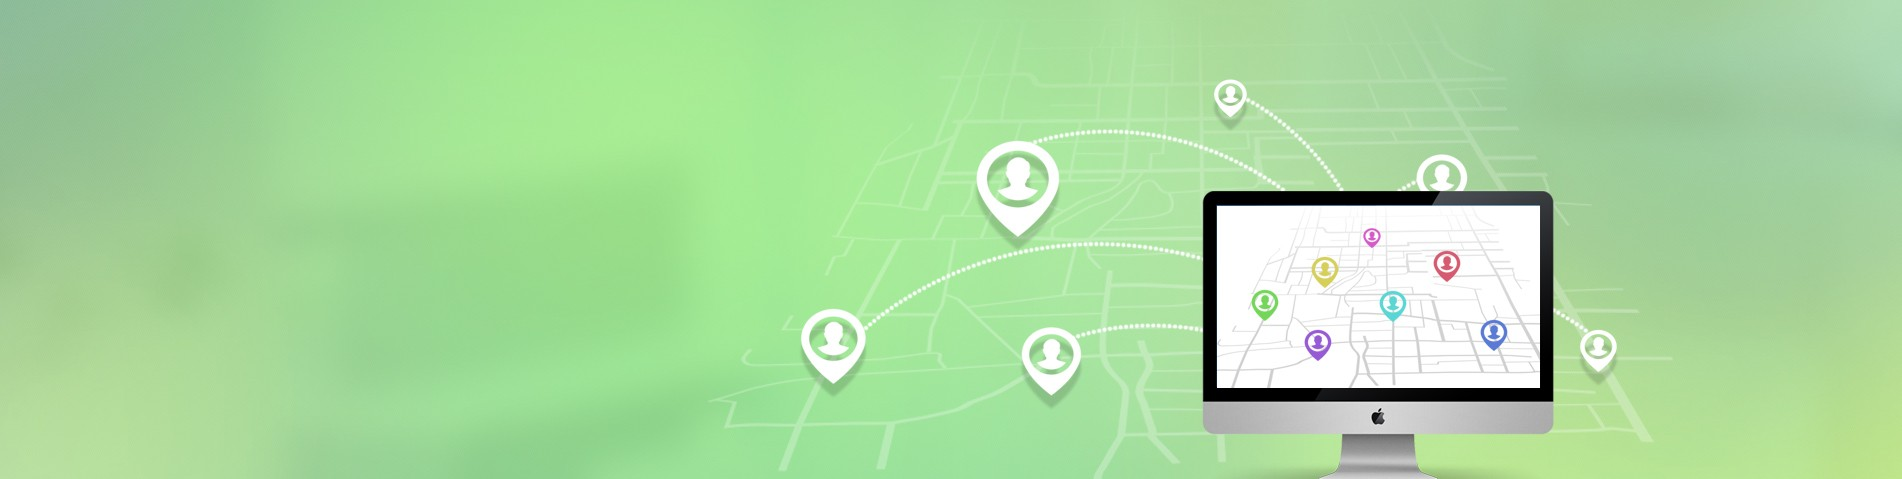 Real-time Location Tracking - Field Service Management